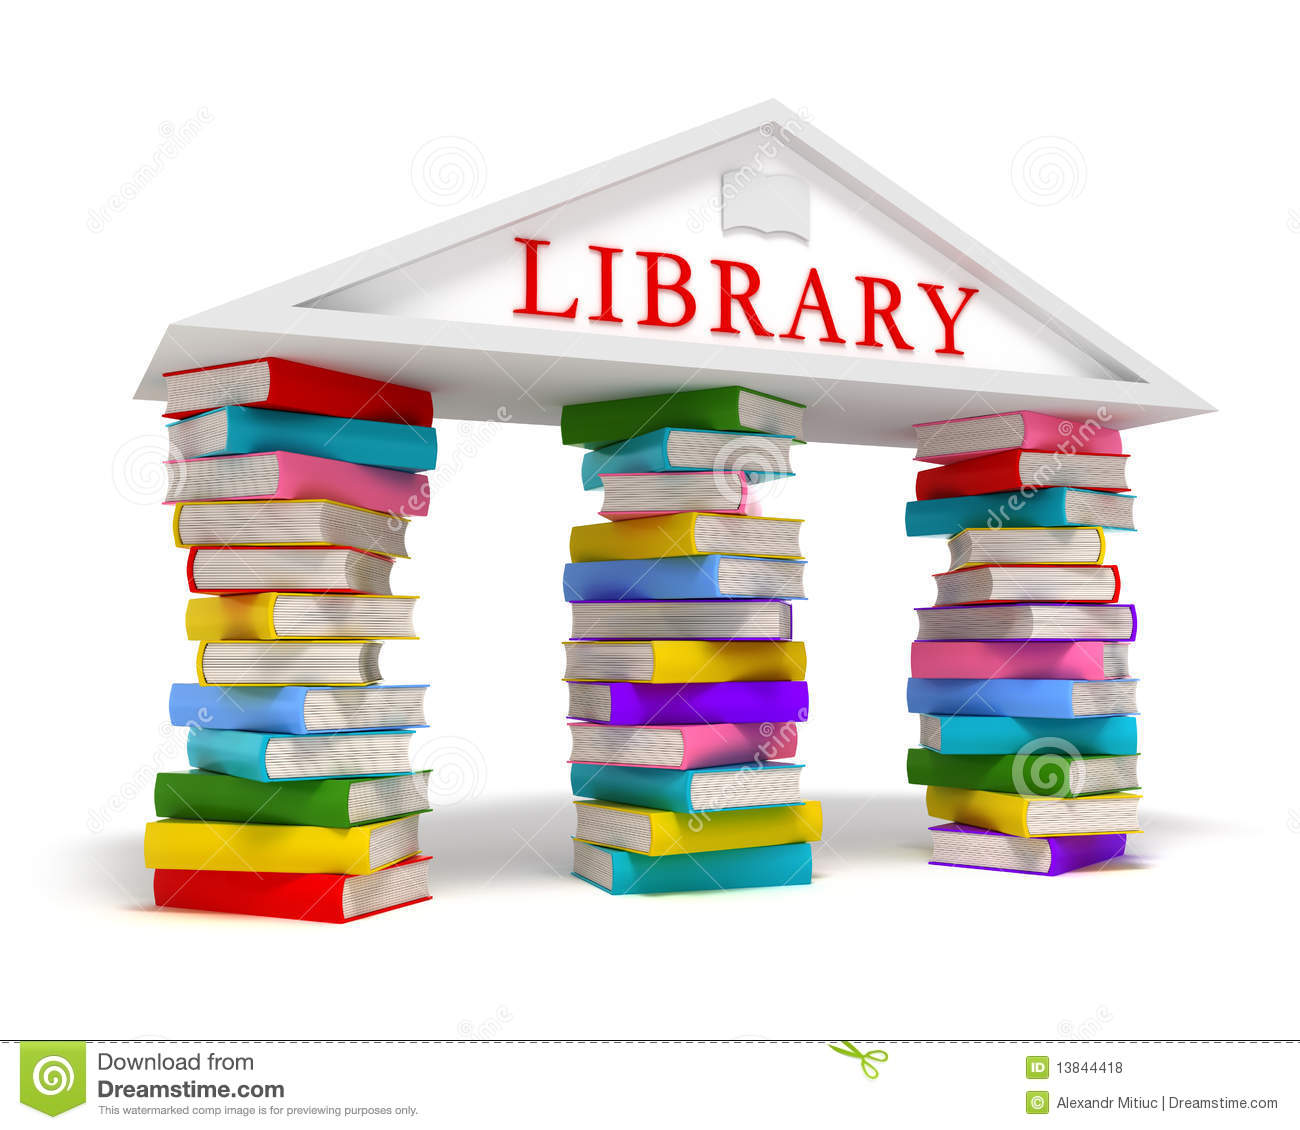 Image result for library books images